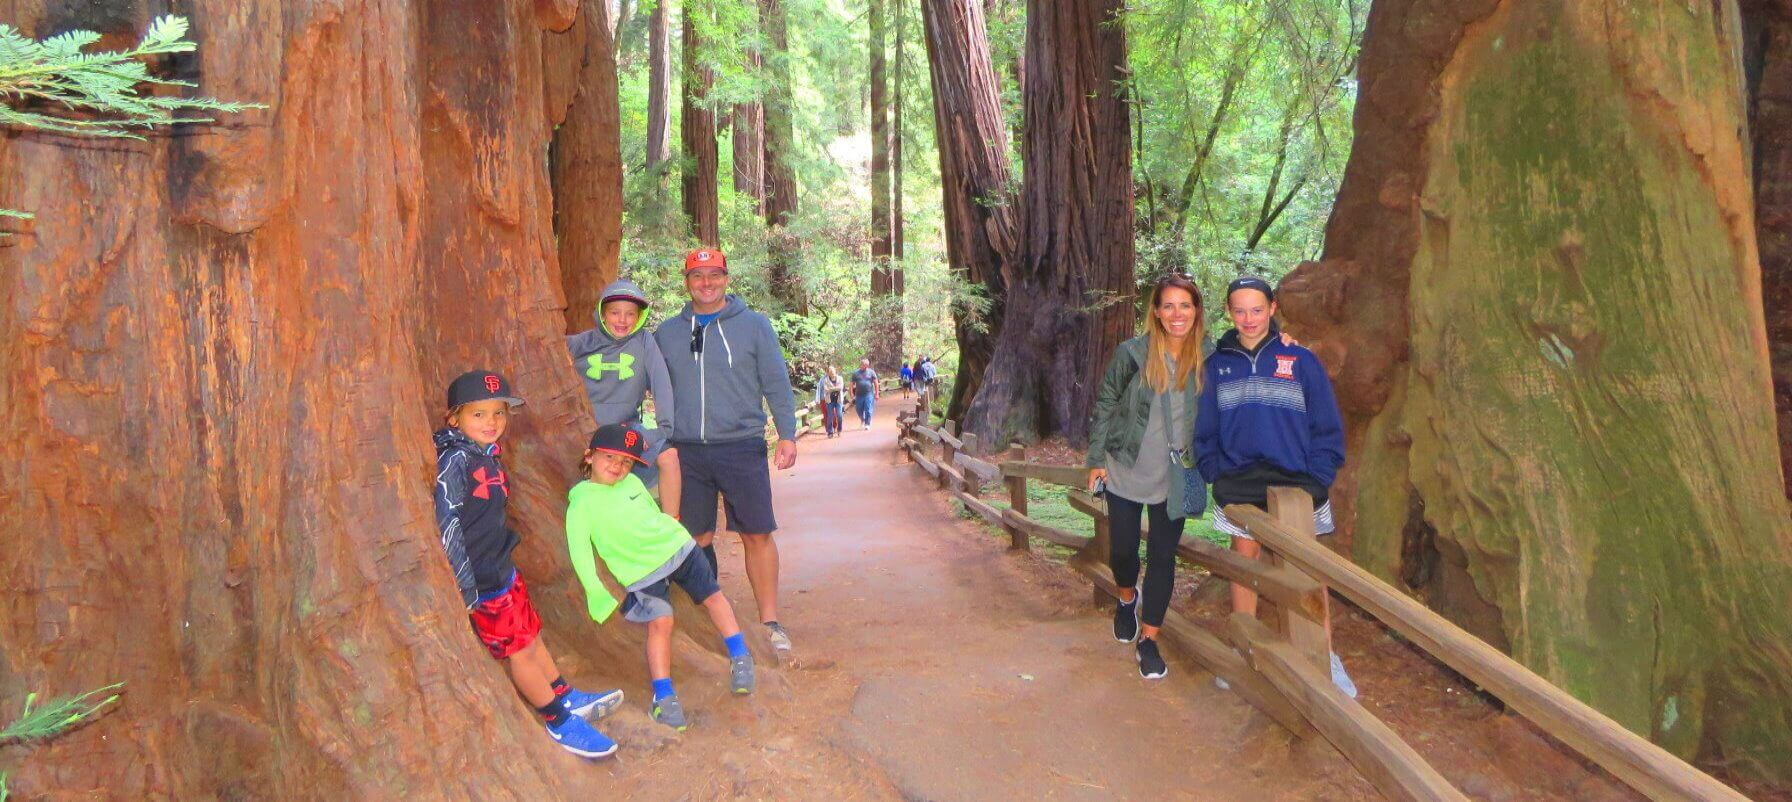 muir-woods-forest-of-redwoods-tour-family-with-kids-from-san-francisco